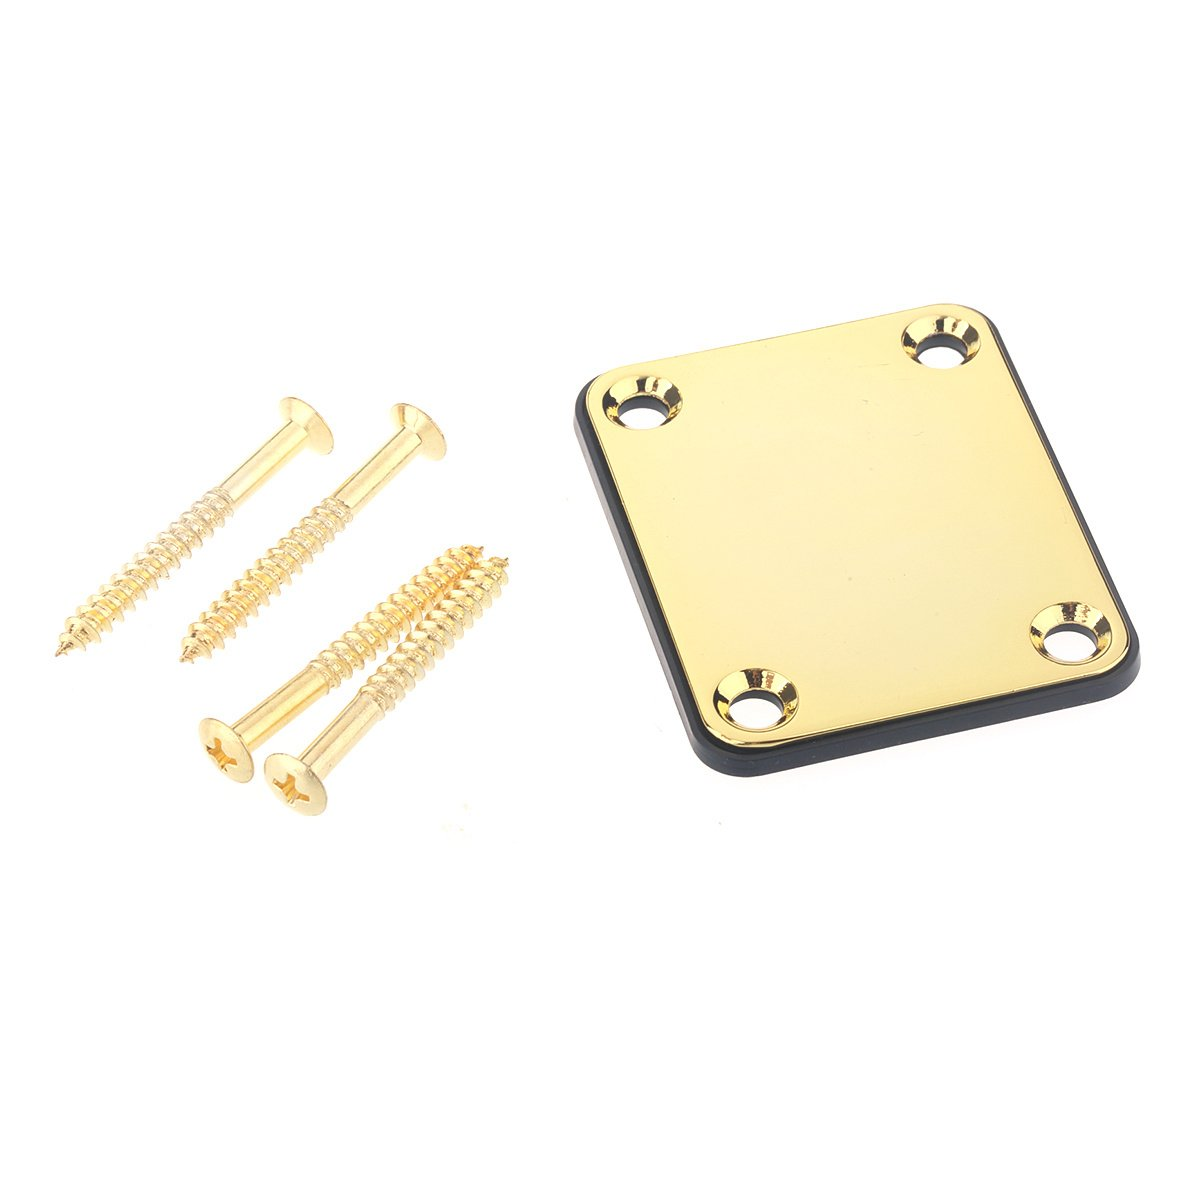 Musiclily Metal 4 Hole Neck Plate for Fender Stratocaster Telecaster Guitar Parts, Chrome JQB-01